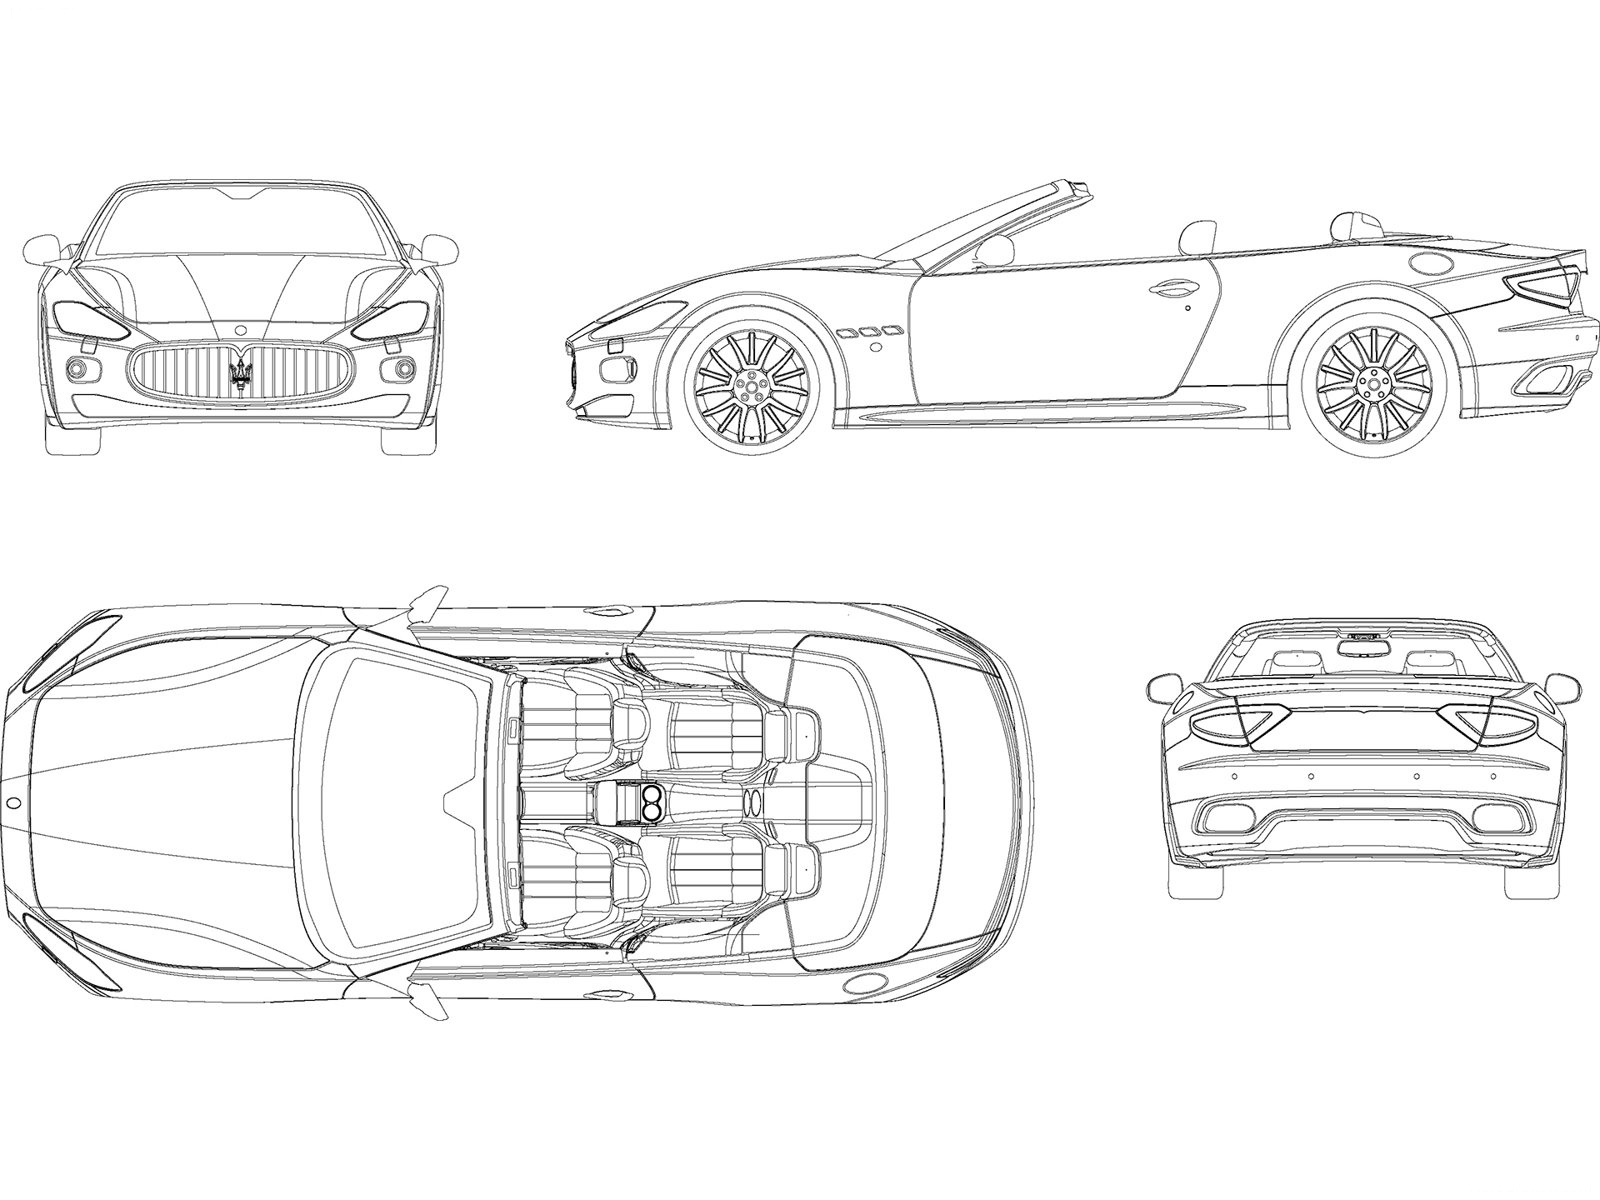 3d Auto Club Blueprints Of Cars